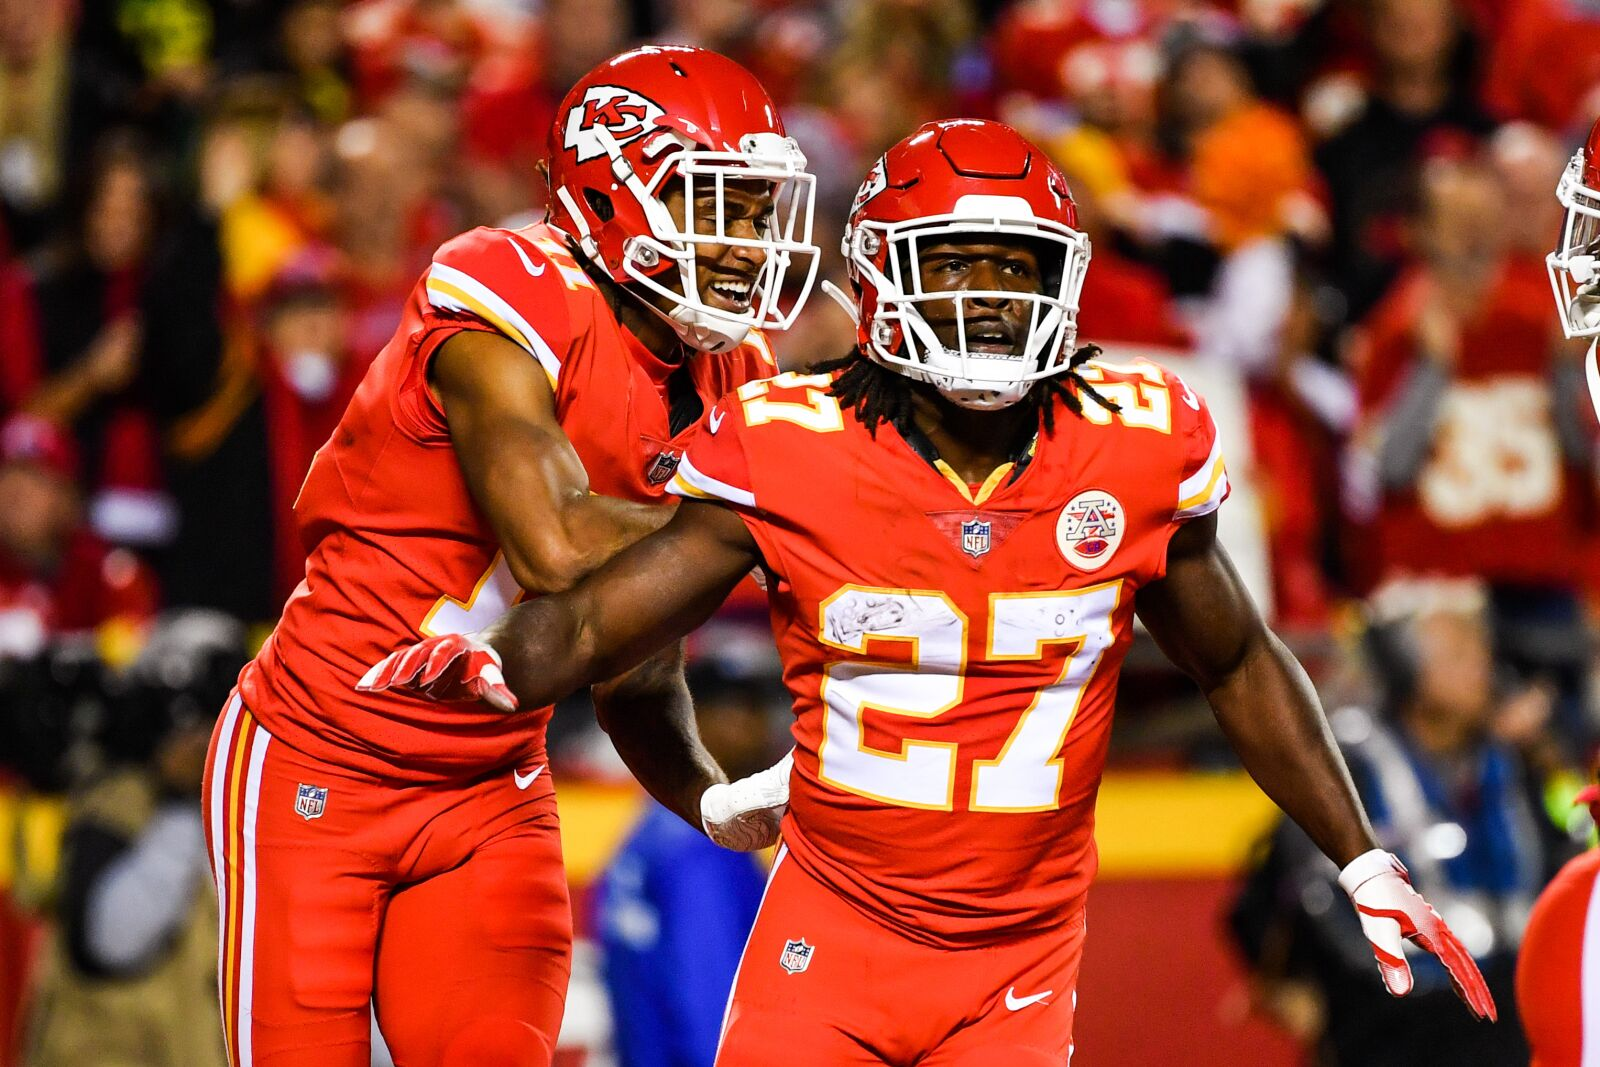 Kareem Hunt won't solve Buccaneers' issues on the ground